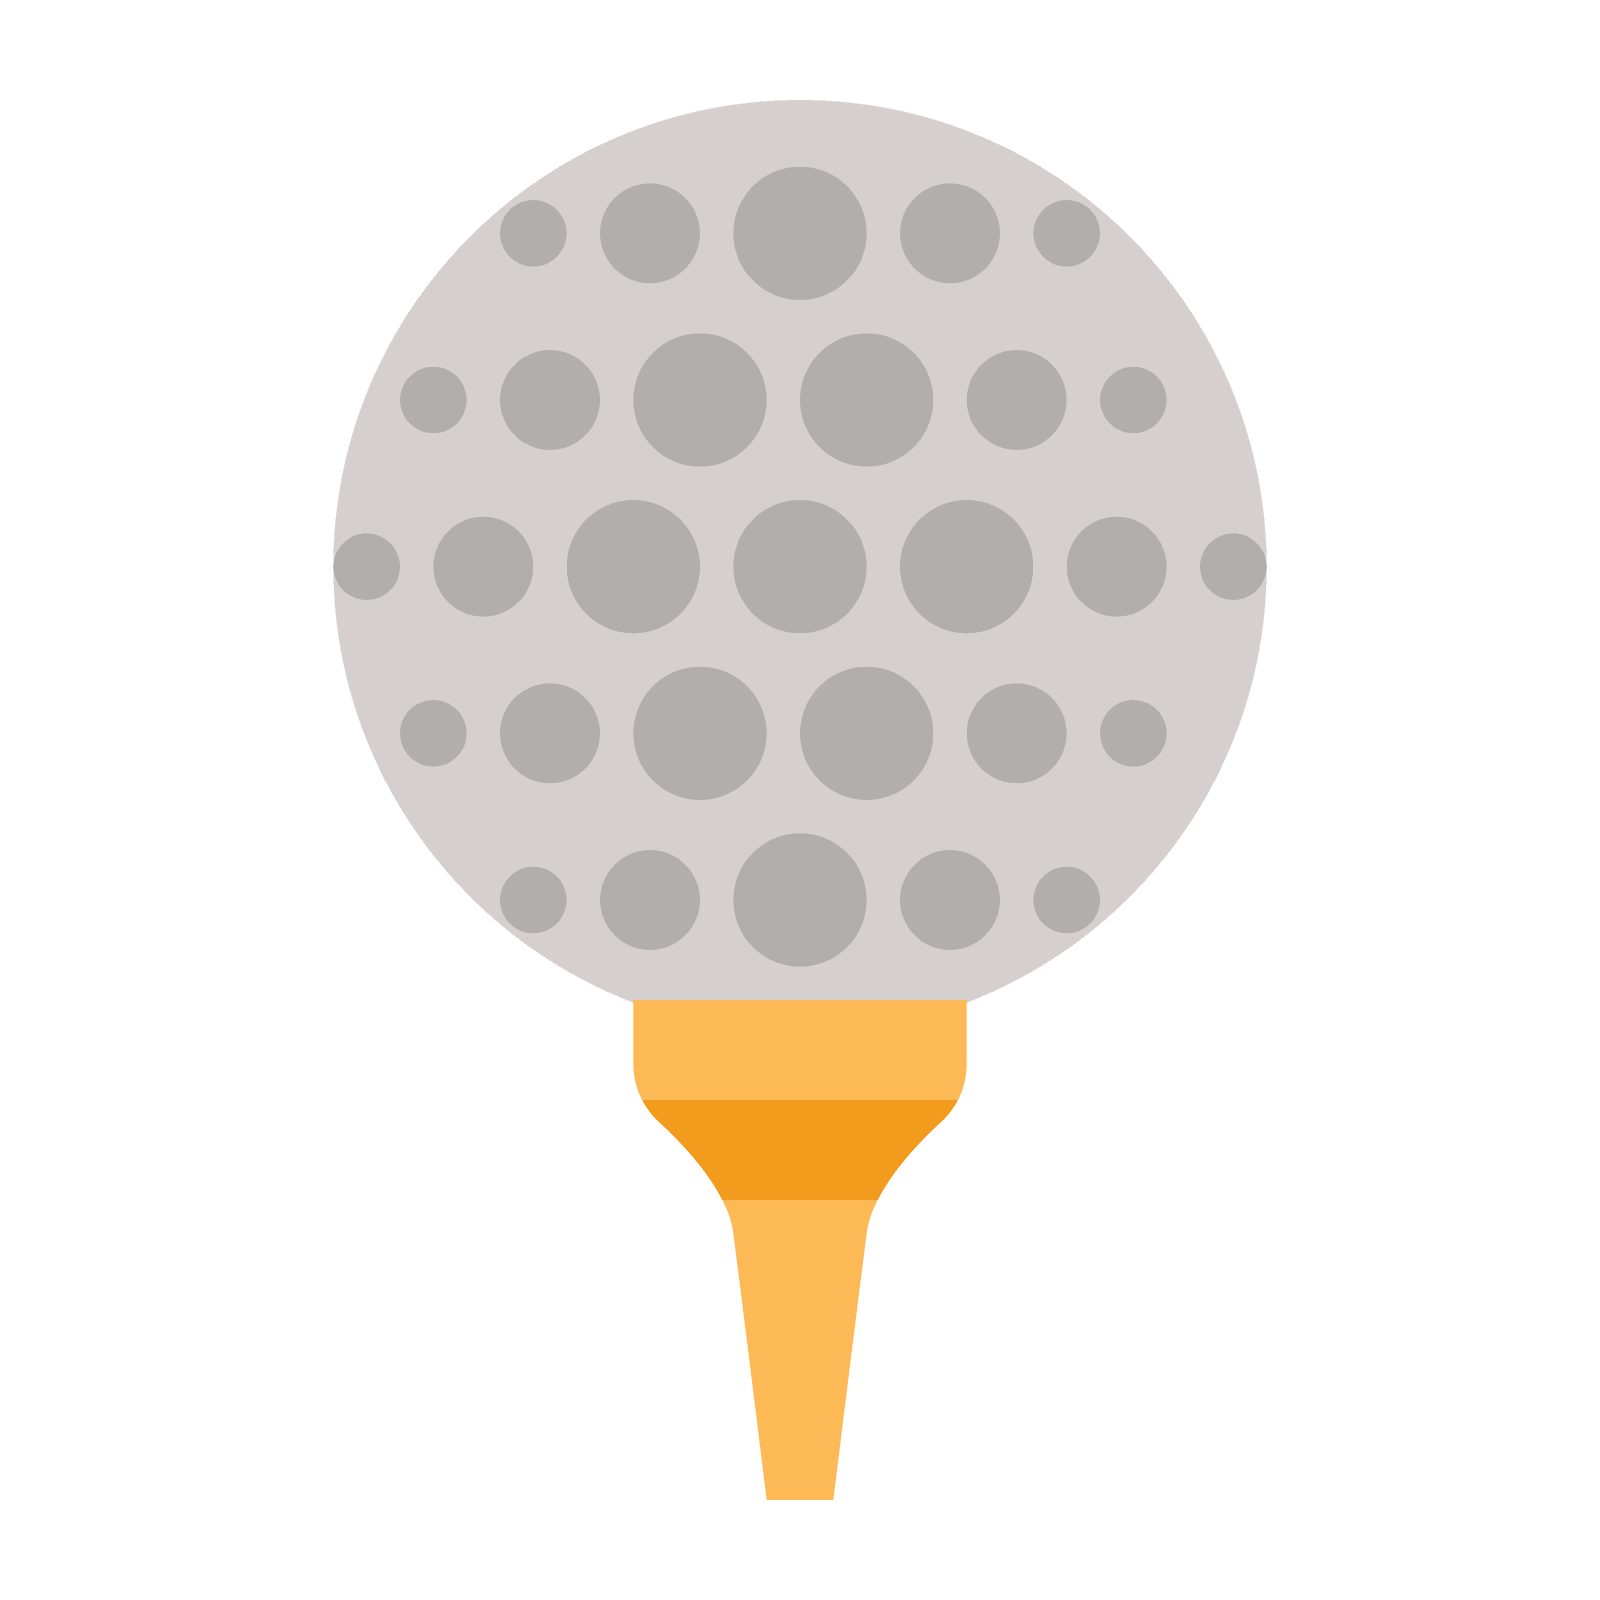 Golf ball on tee png. Icono descarga gratuita y